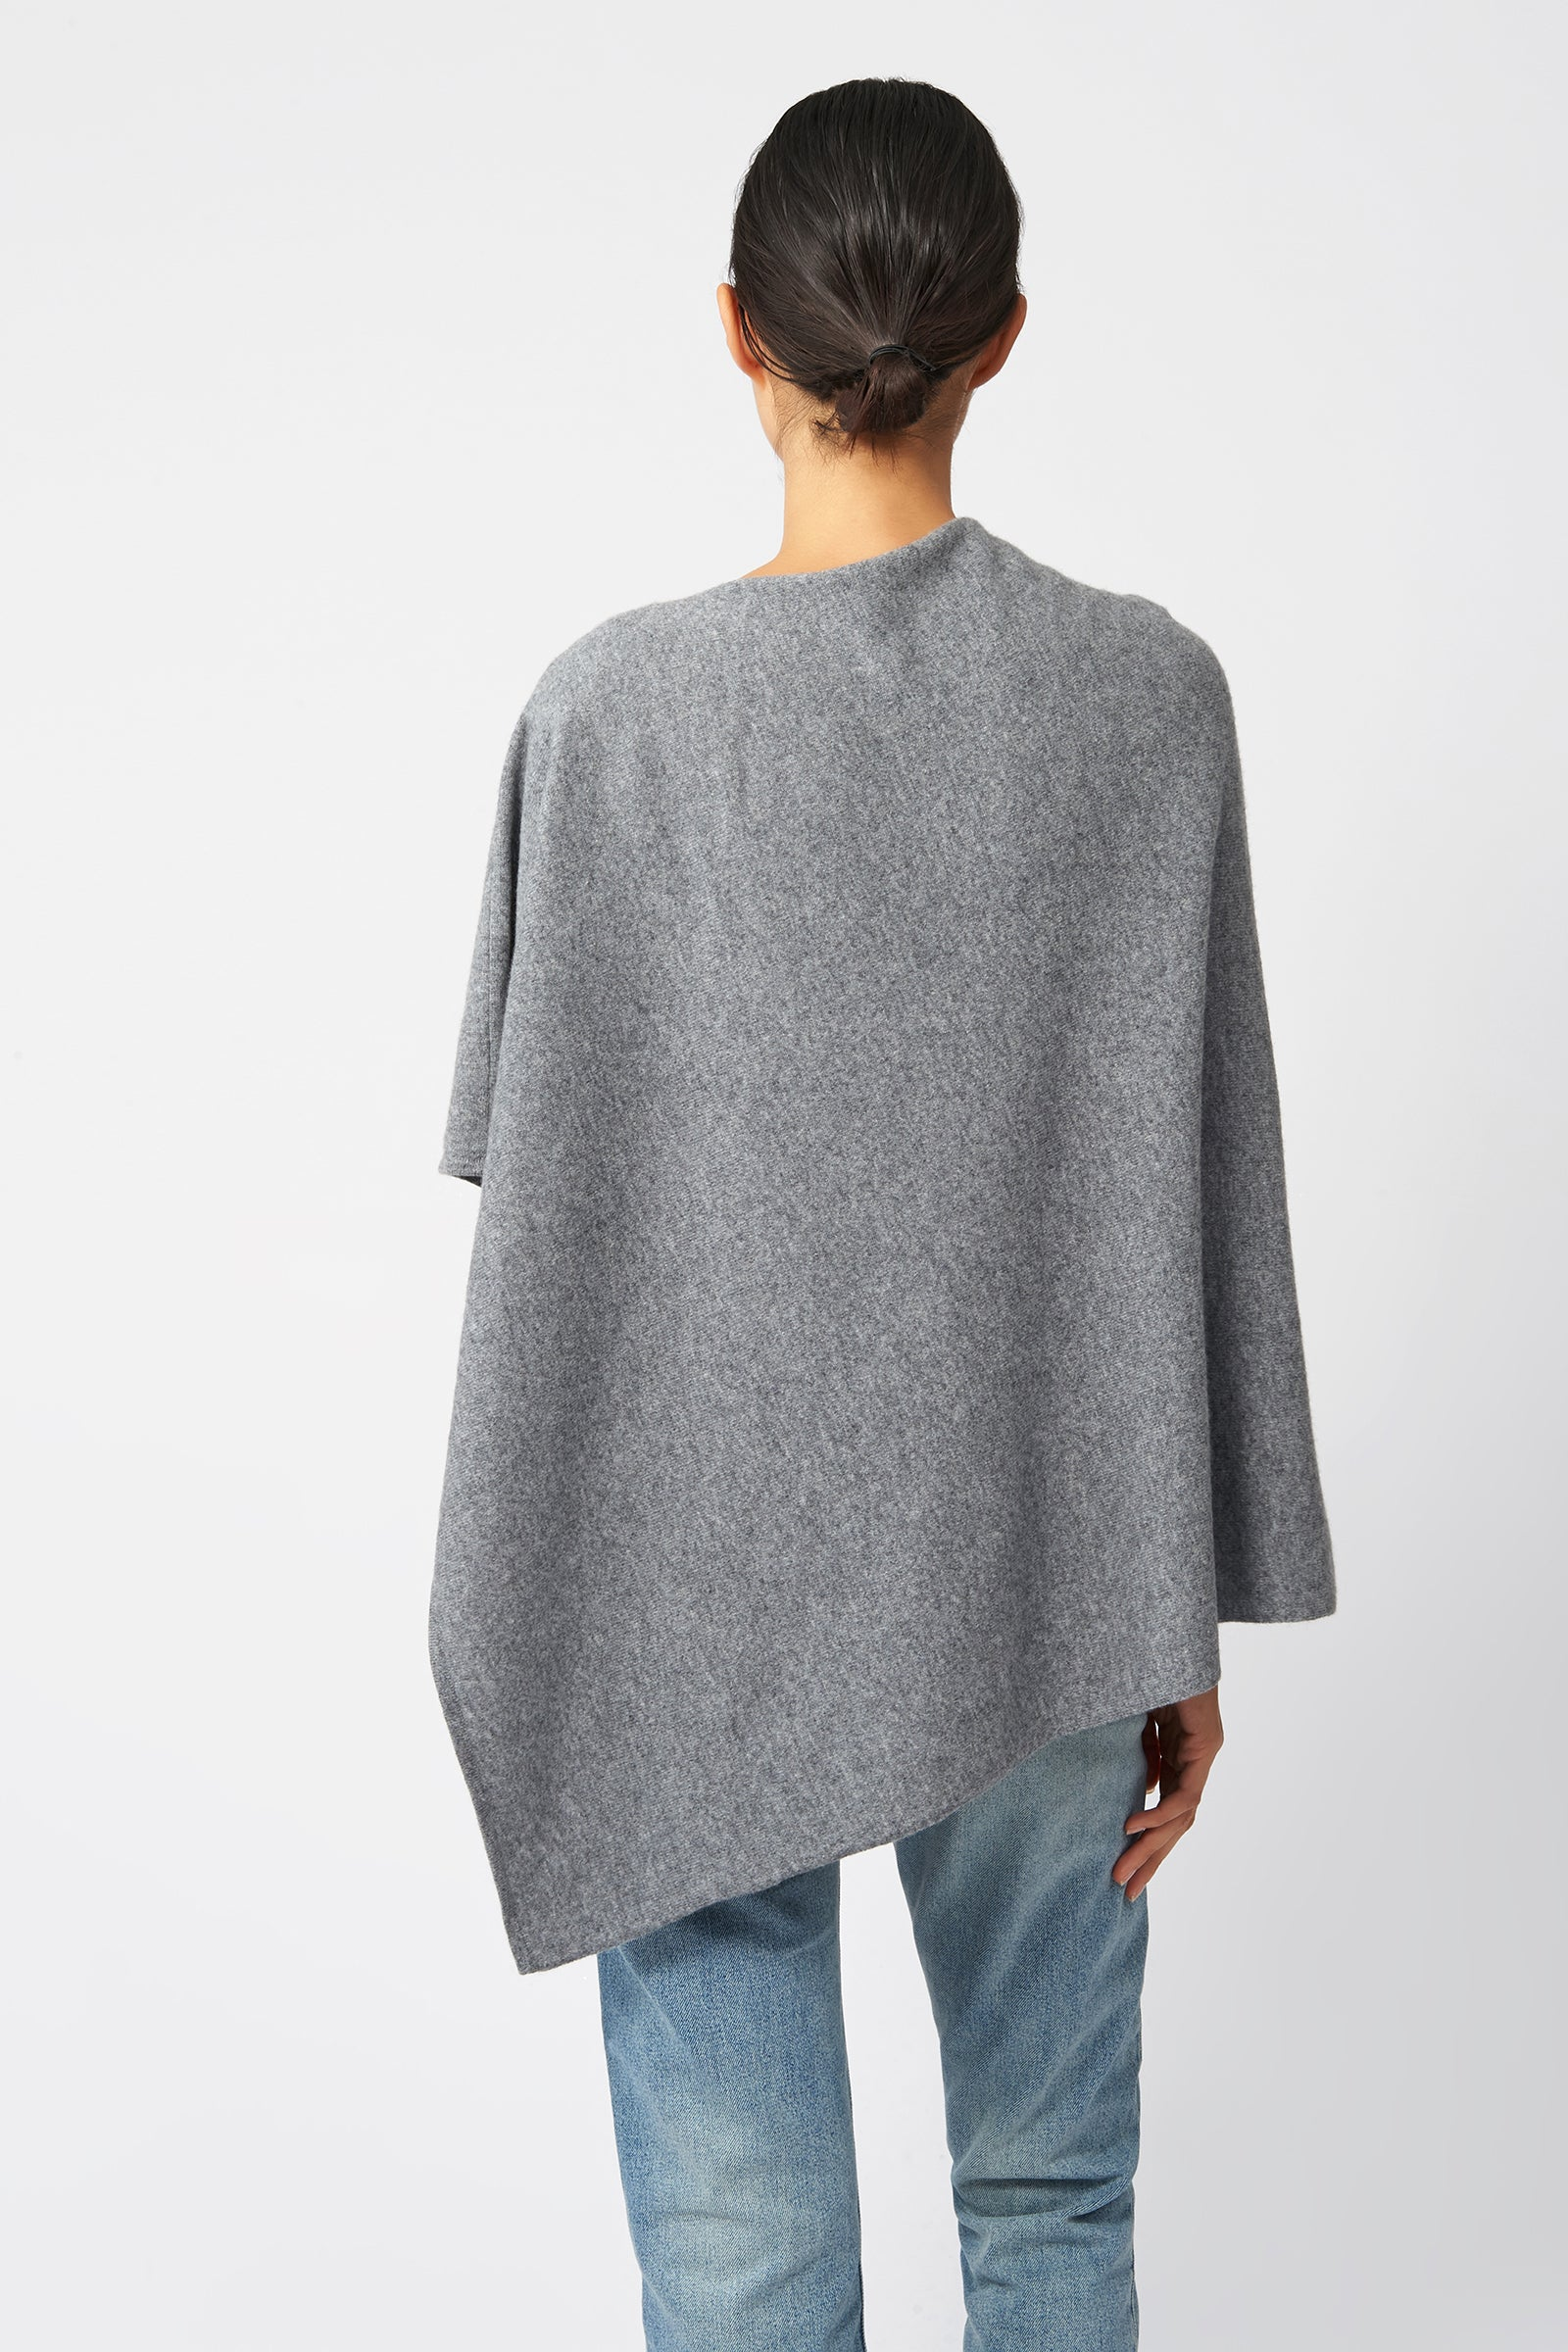 Kal Rieman Cashmere Poncho in Grey Flannel on Model Back View